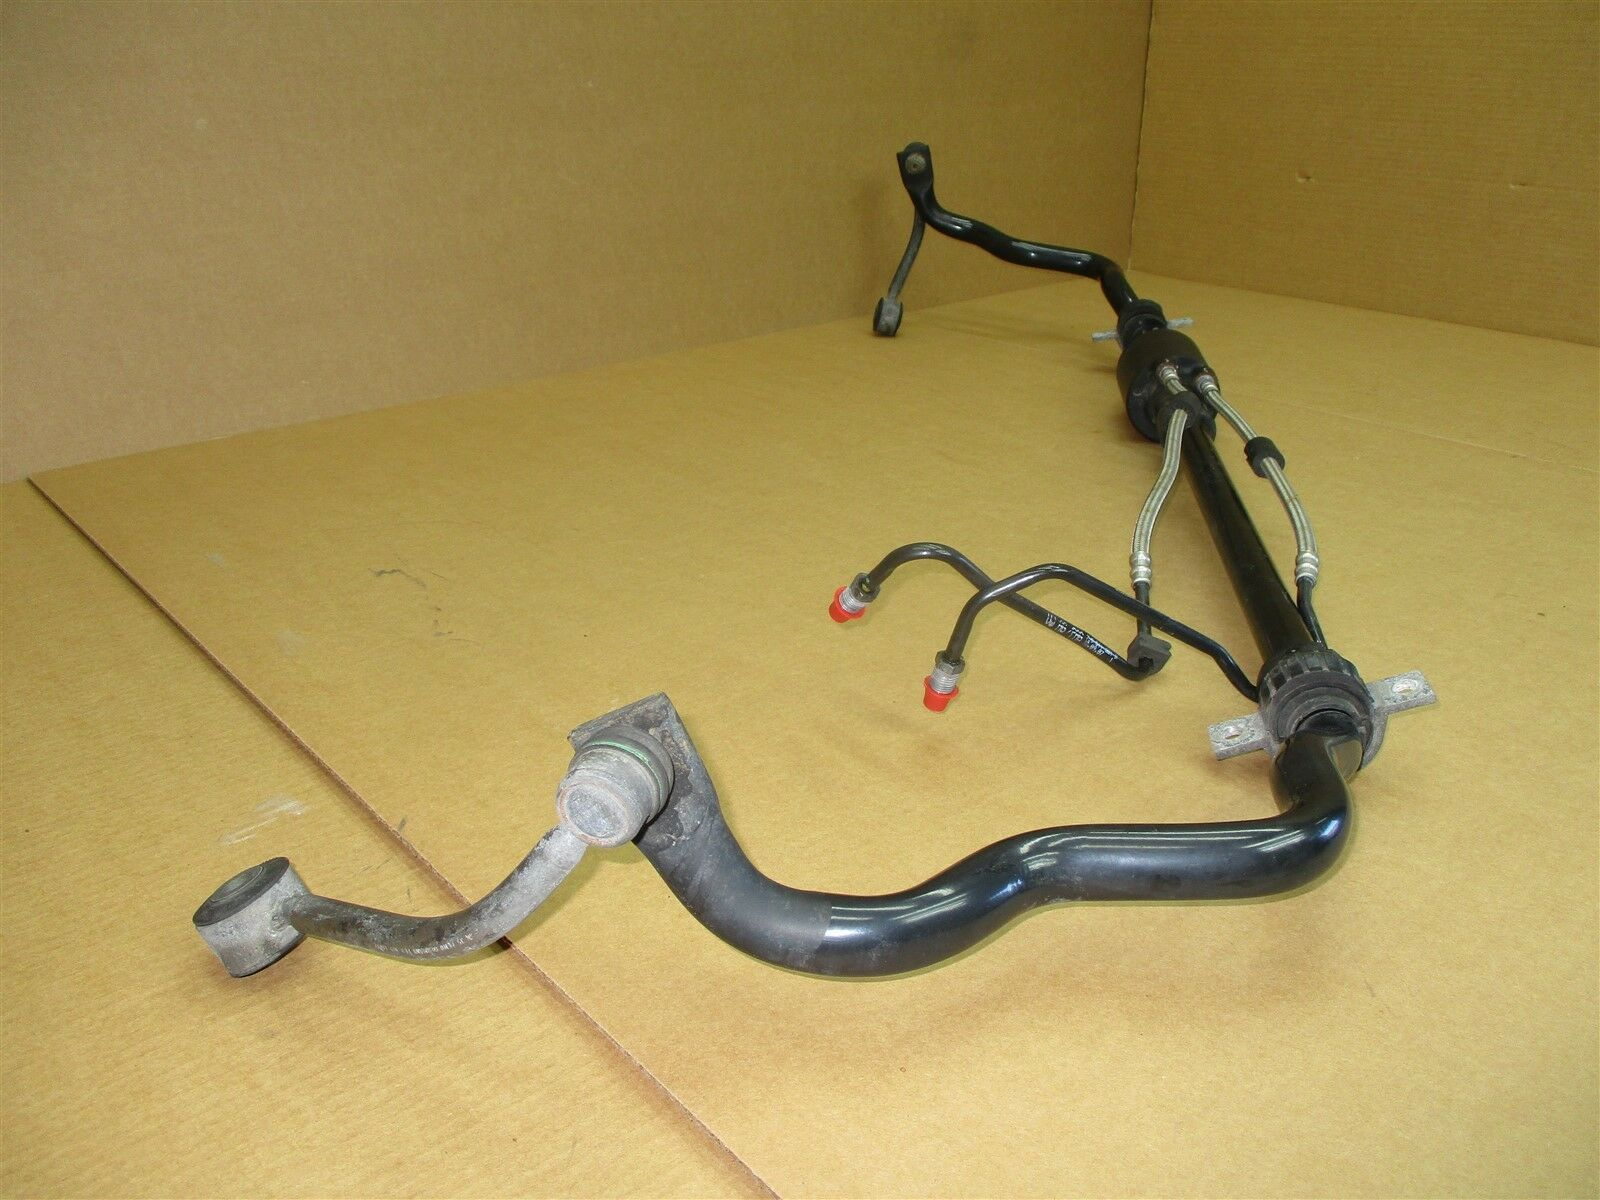 08 Cayenne Turbo AWD Porsche 957 REAR STABILIZER SWAY BAR 7L5511305 102,629